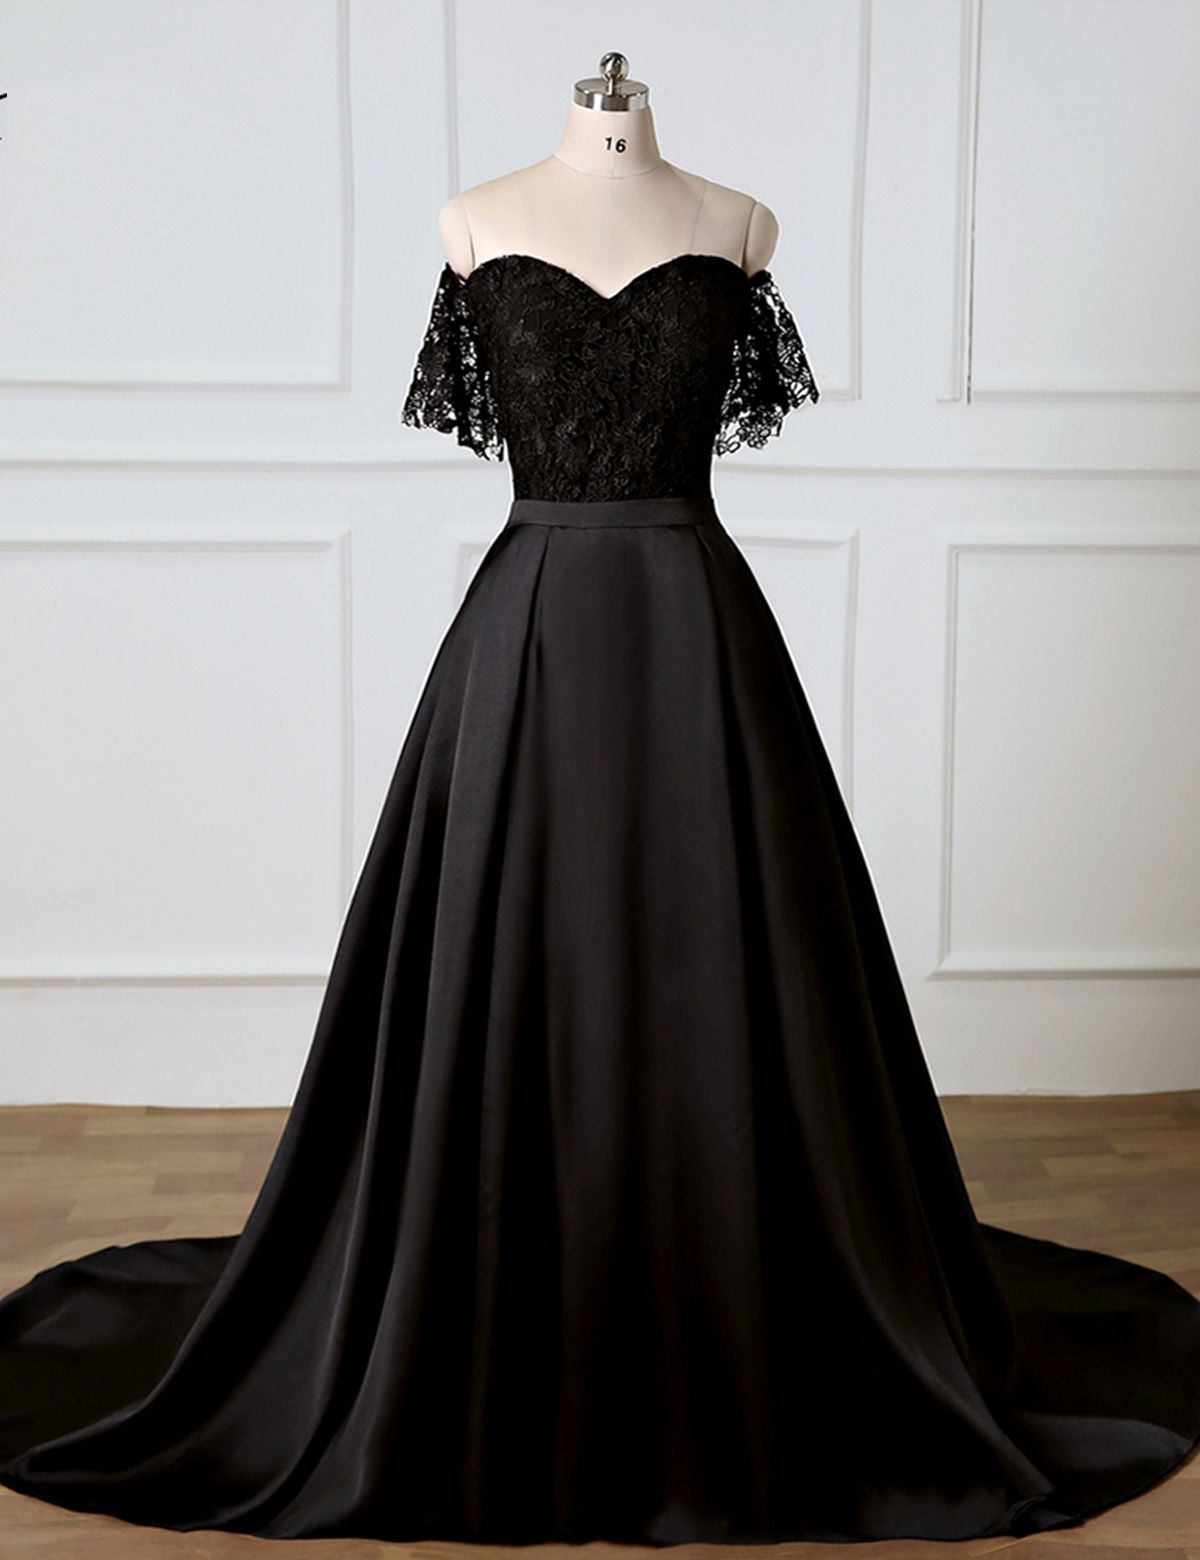 20e3a3409a0 Sweetheart Black Lace Off Shoulder Long Prom Dress With Removable Skirt  from Sweetheart Dress